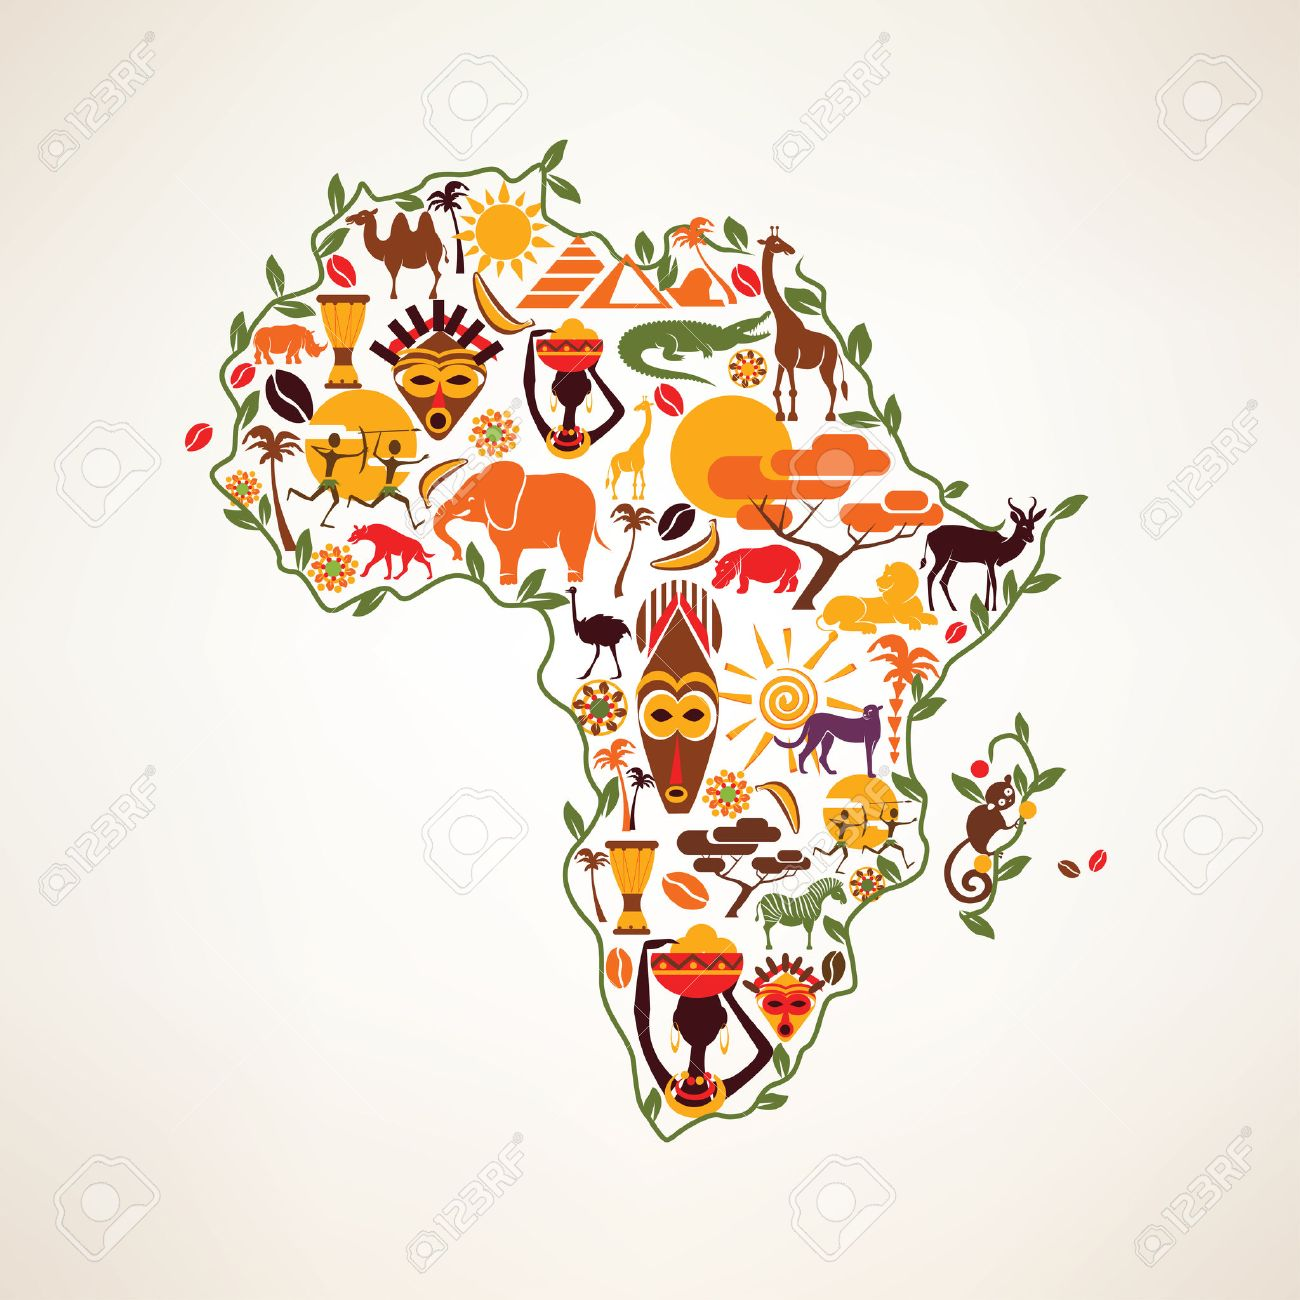 free africa map icon